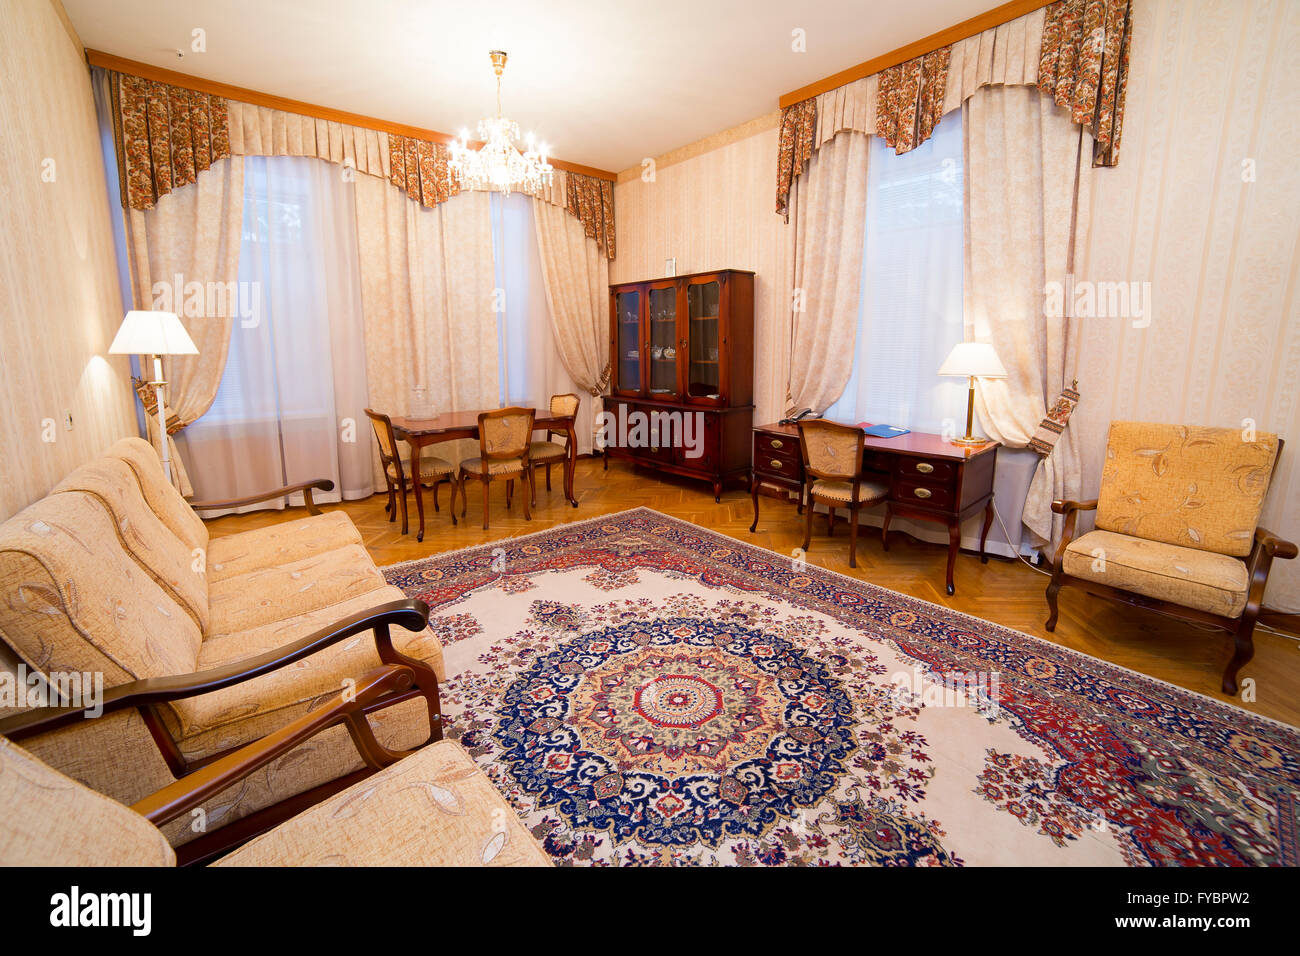 hotel luxury apartment interior in classic style with oriental carpet